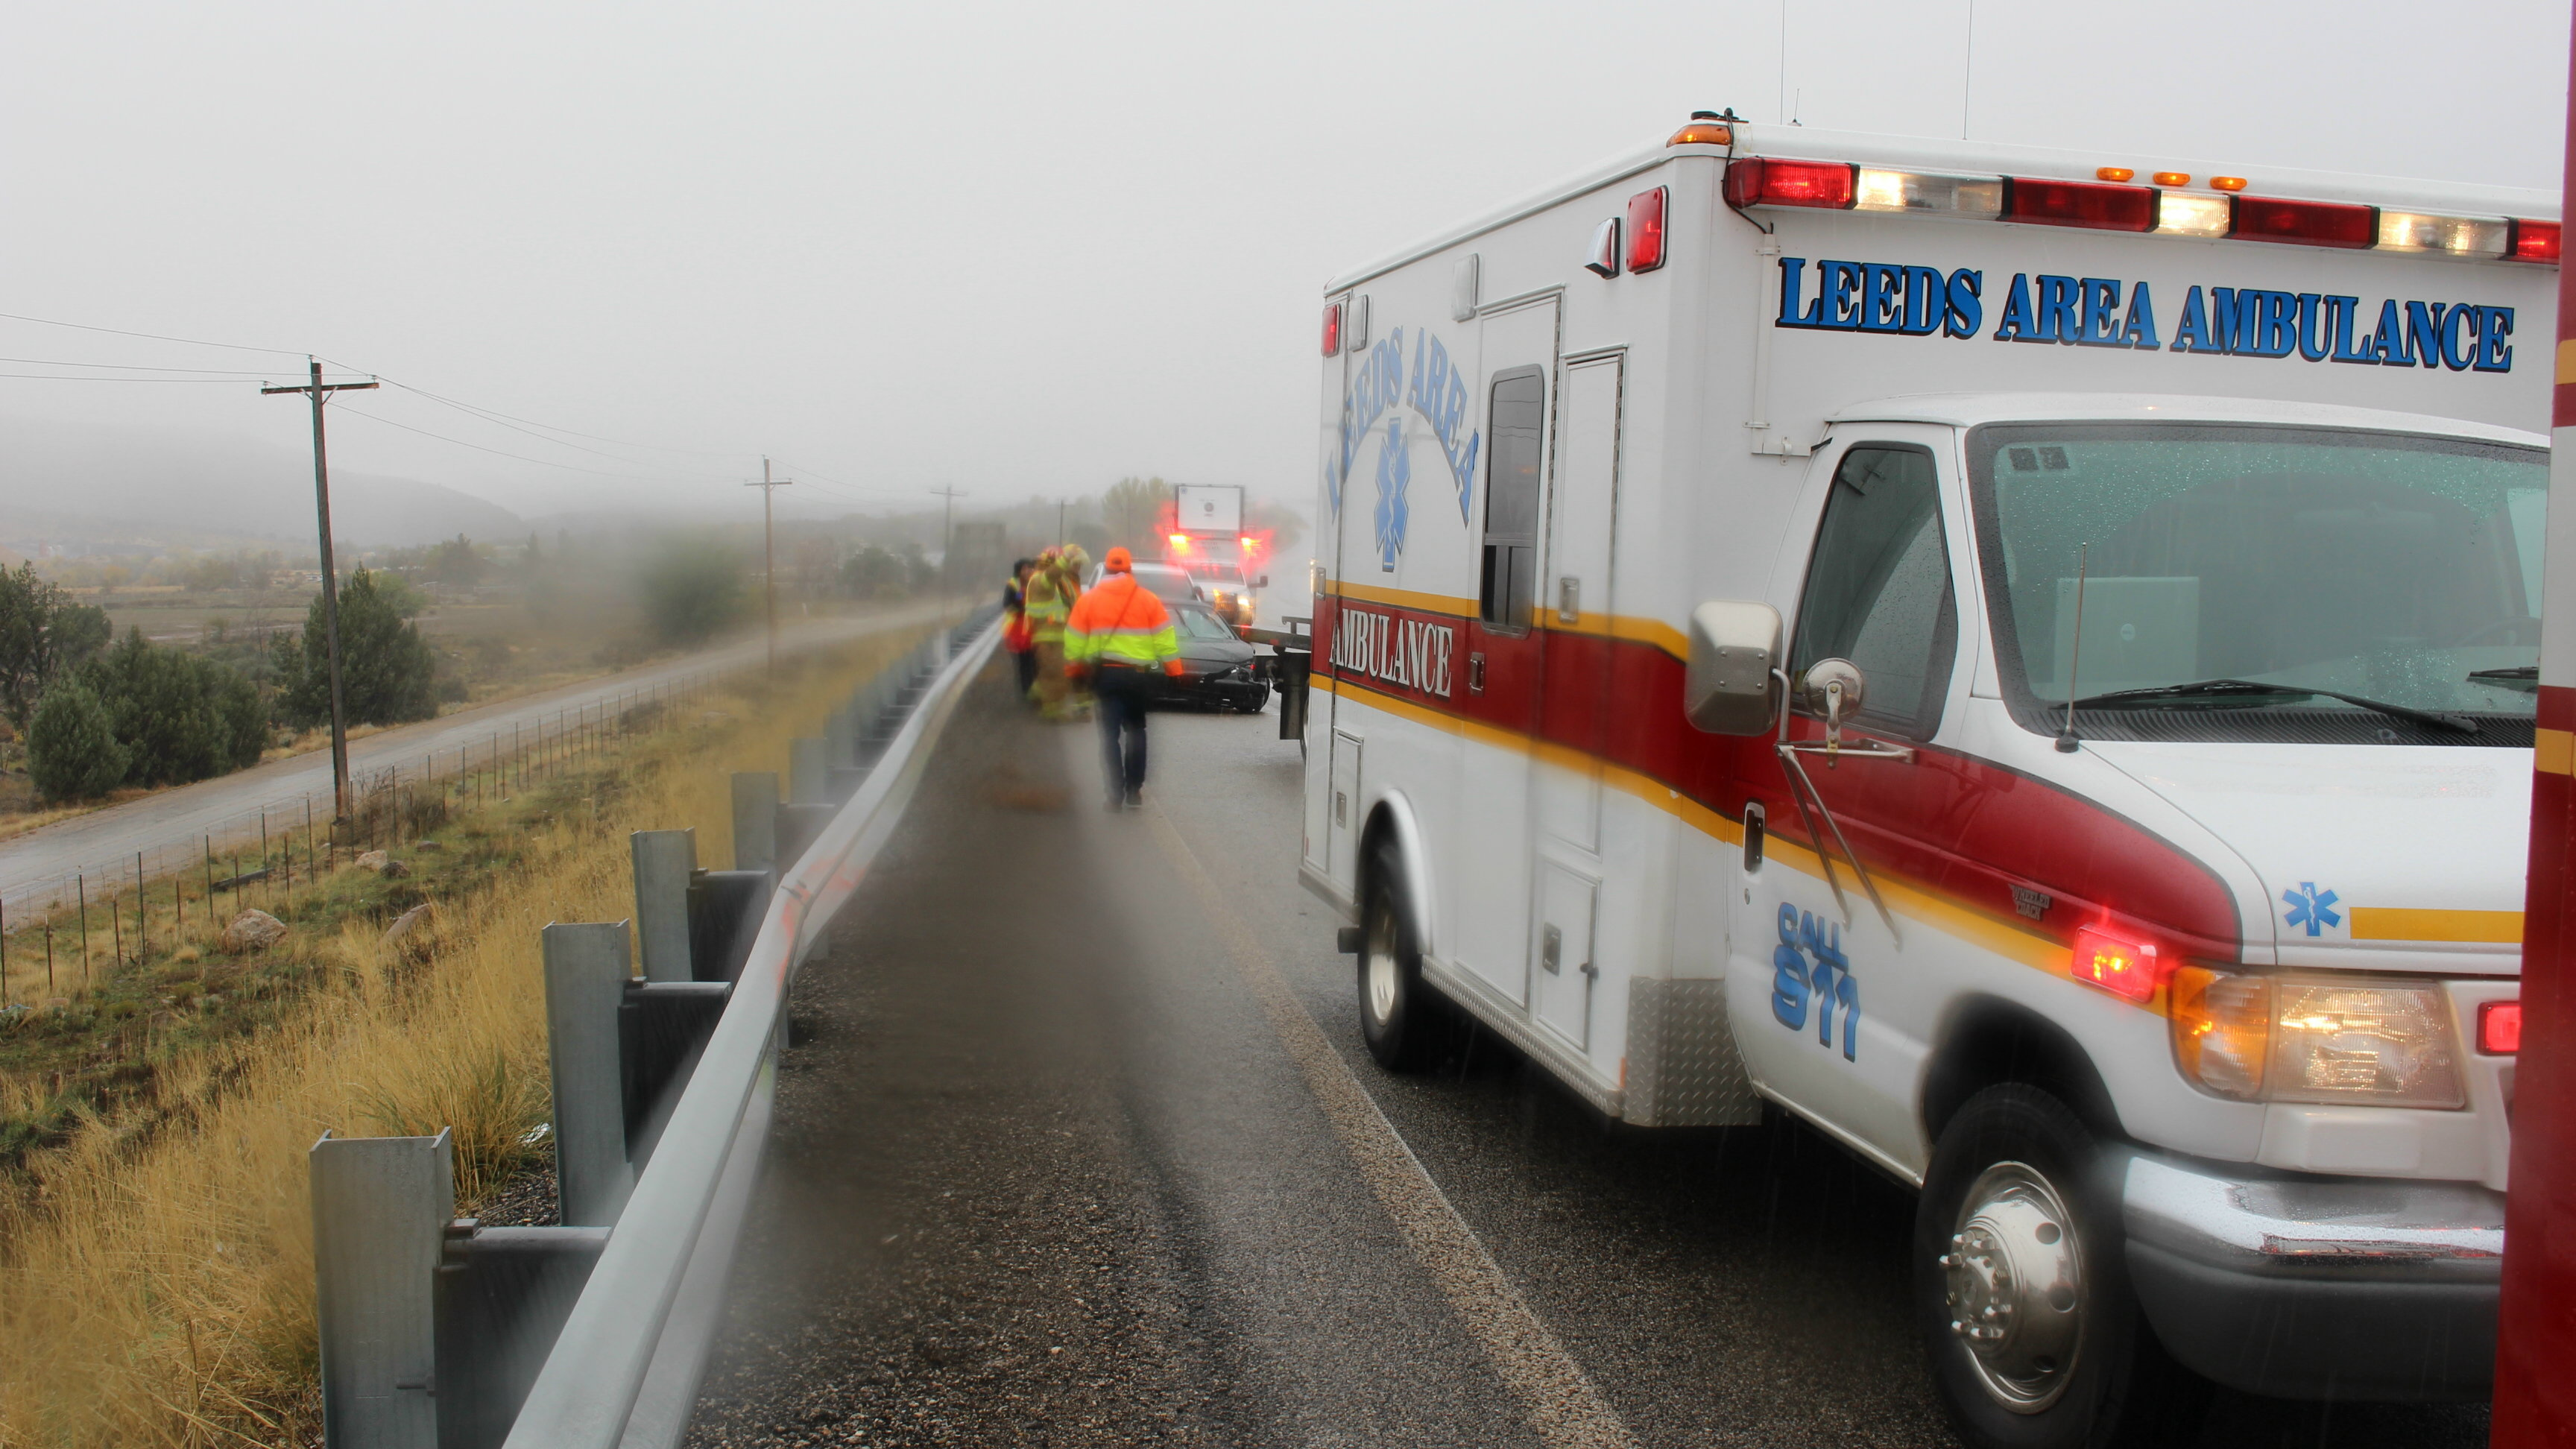 Speed mixed with less-than-ideal road conditions are considered to be contributing factors in a car-versus-semi accident on northbound I-15 near milepost 32. The roadway was slick due to a mix of rain and snowfall, Washington County, Utah, Nov. 16, 2015 | Photo by Mori Kessler, St. George News